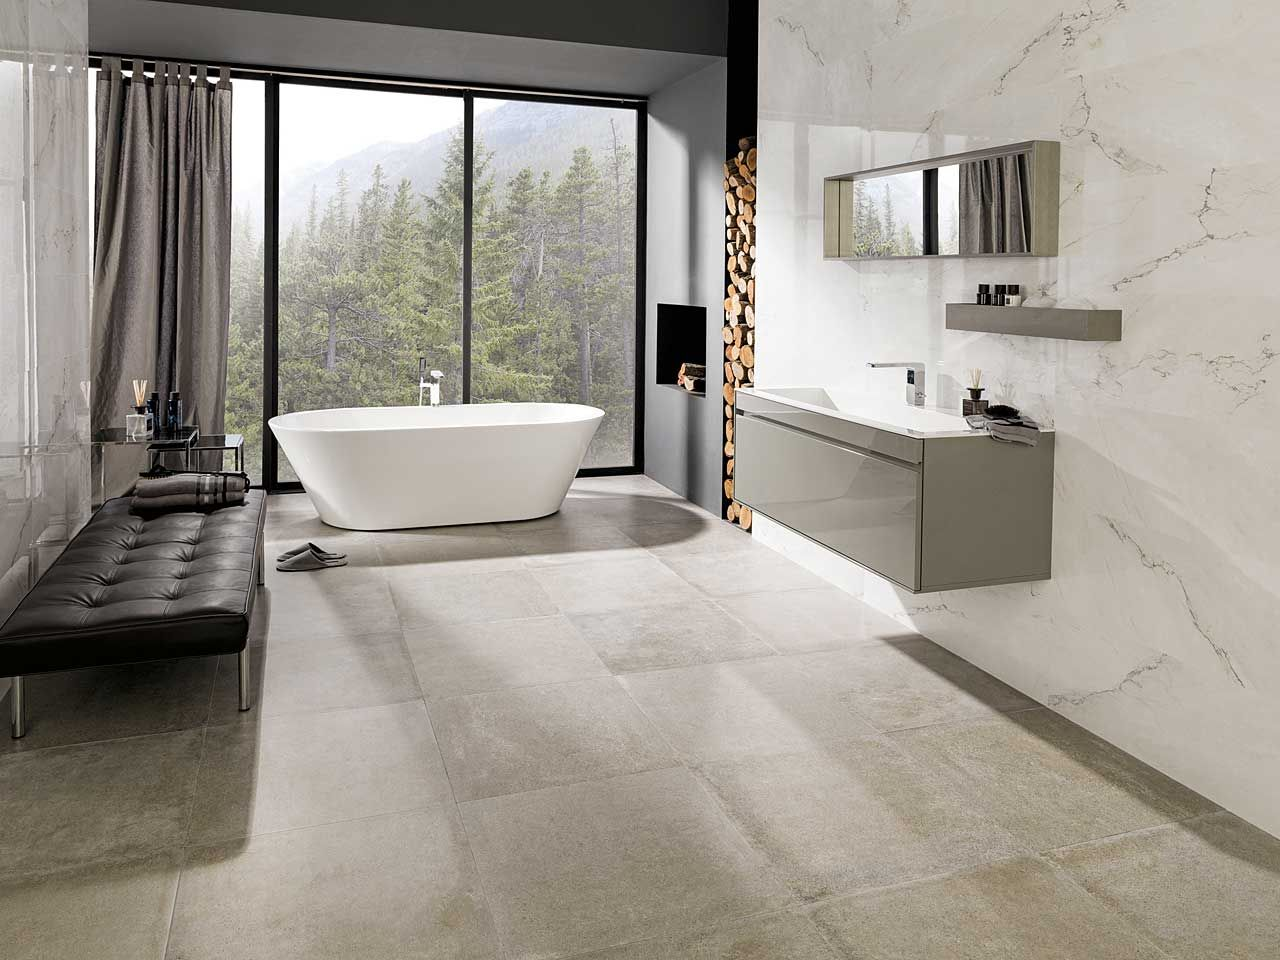 Top Bathroom Tile Trends 2016 Ceramic Wall Tiles Wall